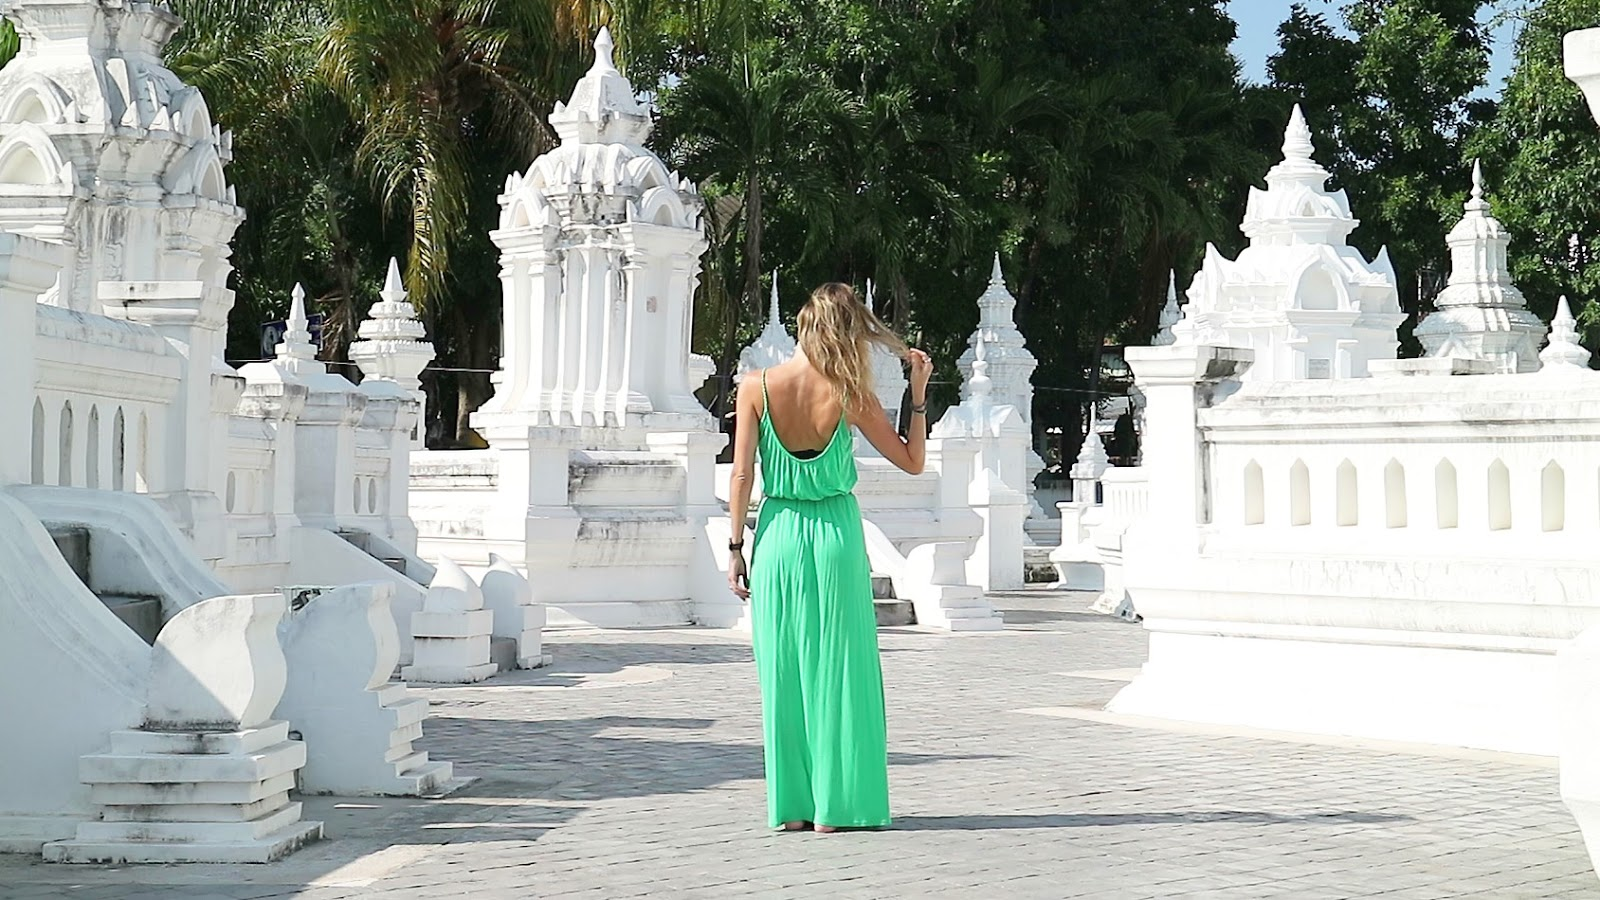 travel and fashion blogger, Alison Hutchinson, at Wat Suan Dok in Chiang Mai, Thailand